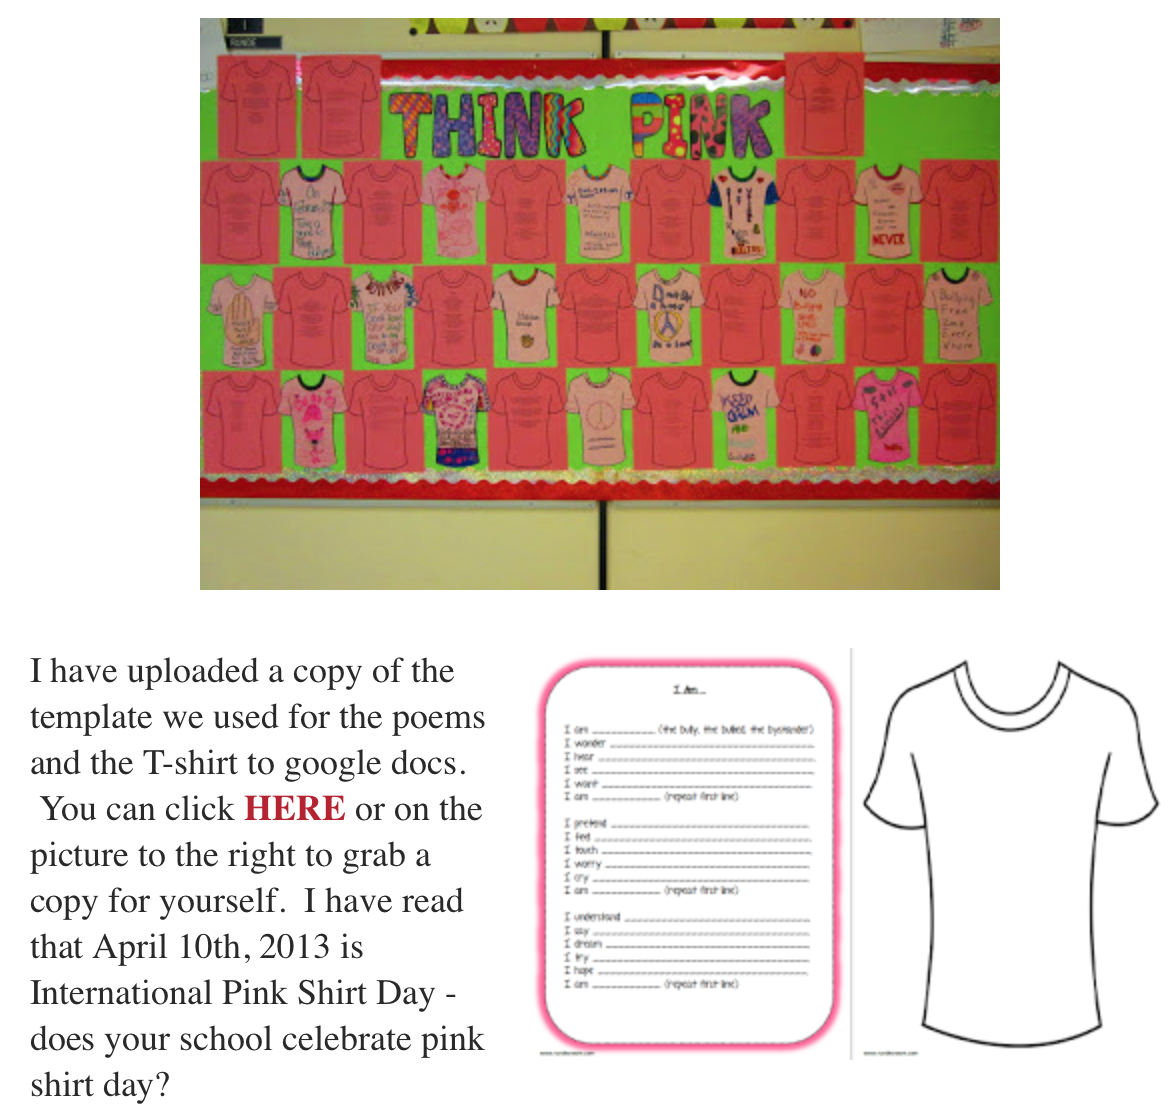 Think Pink National Pink Shirt Day